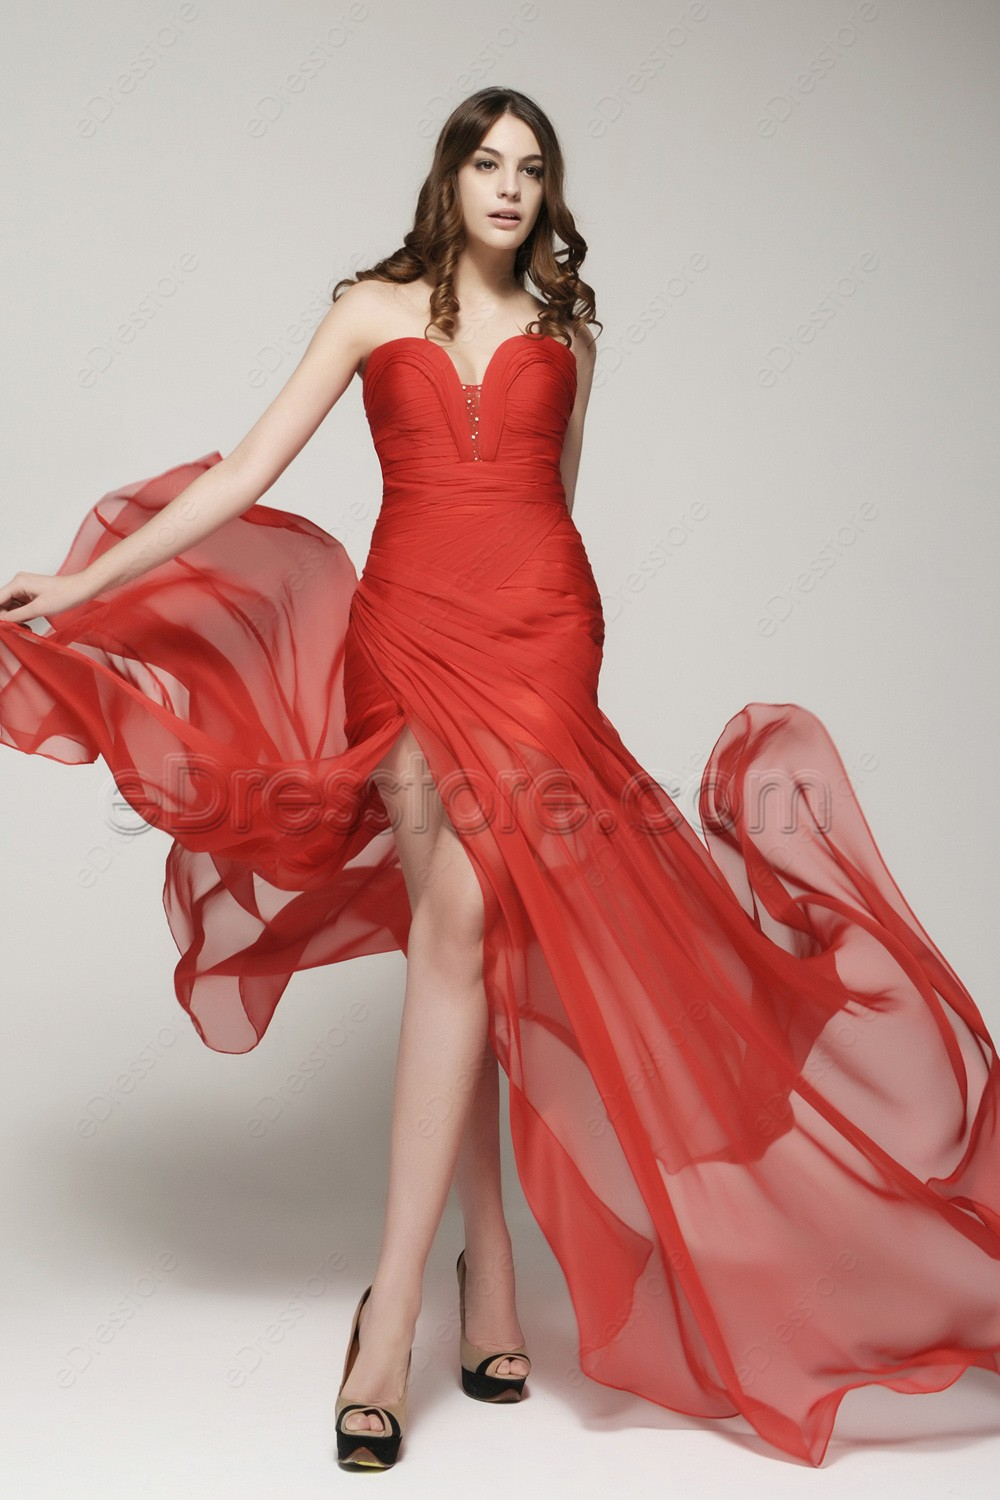 Red Flowing Chiffon Prom Dresses With Slit